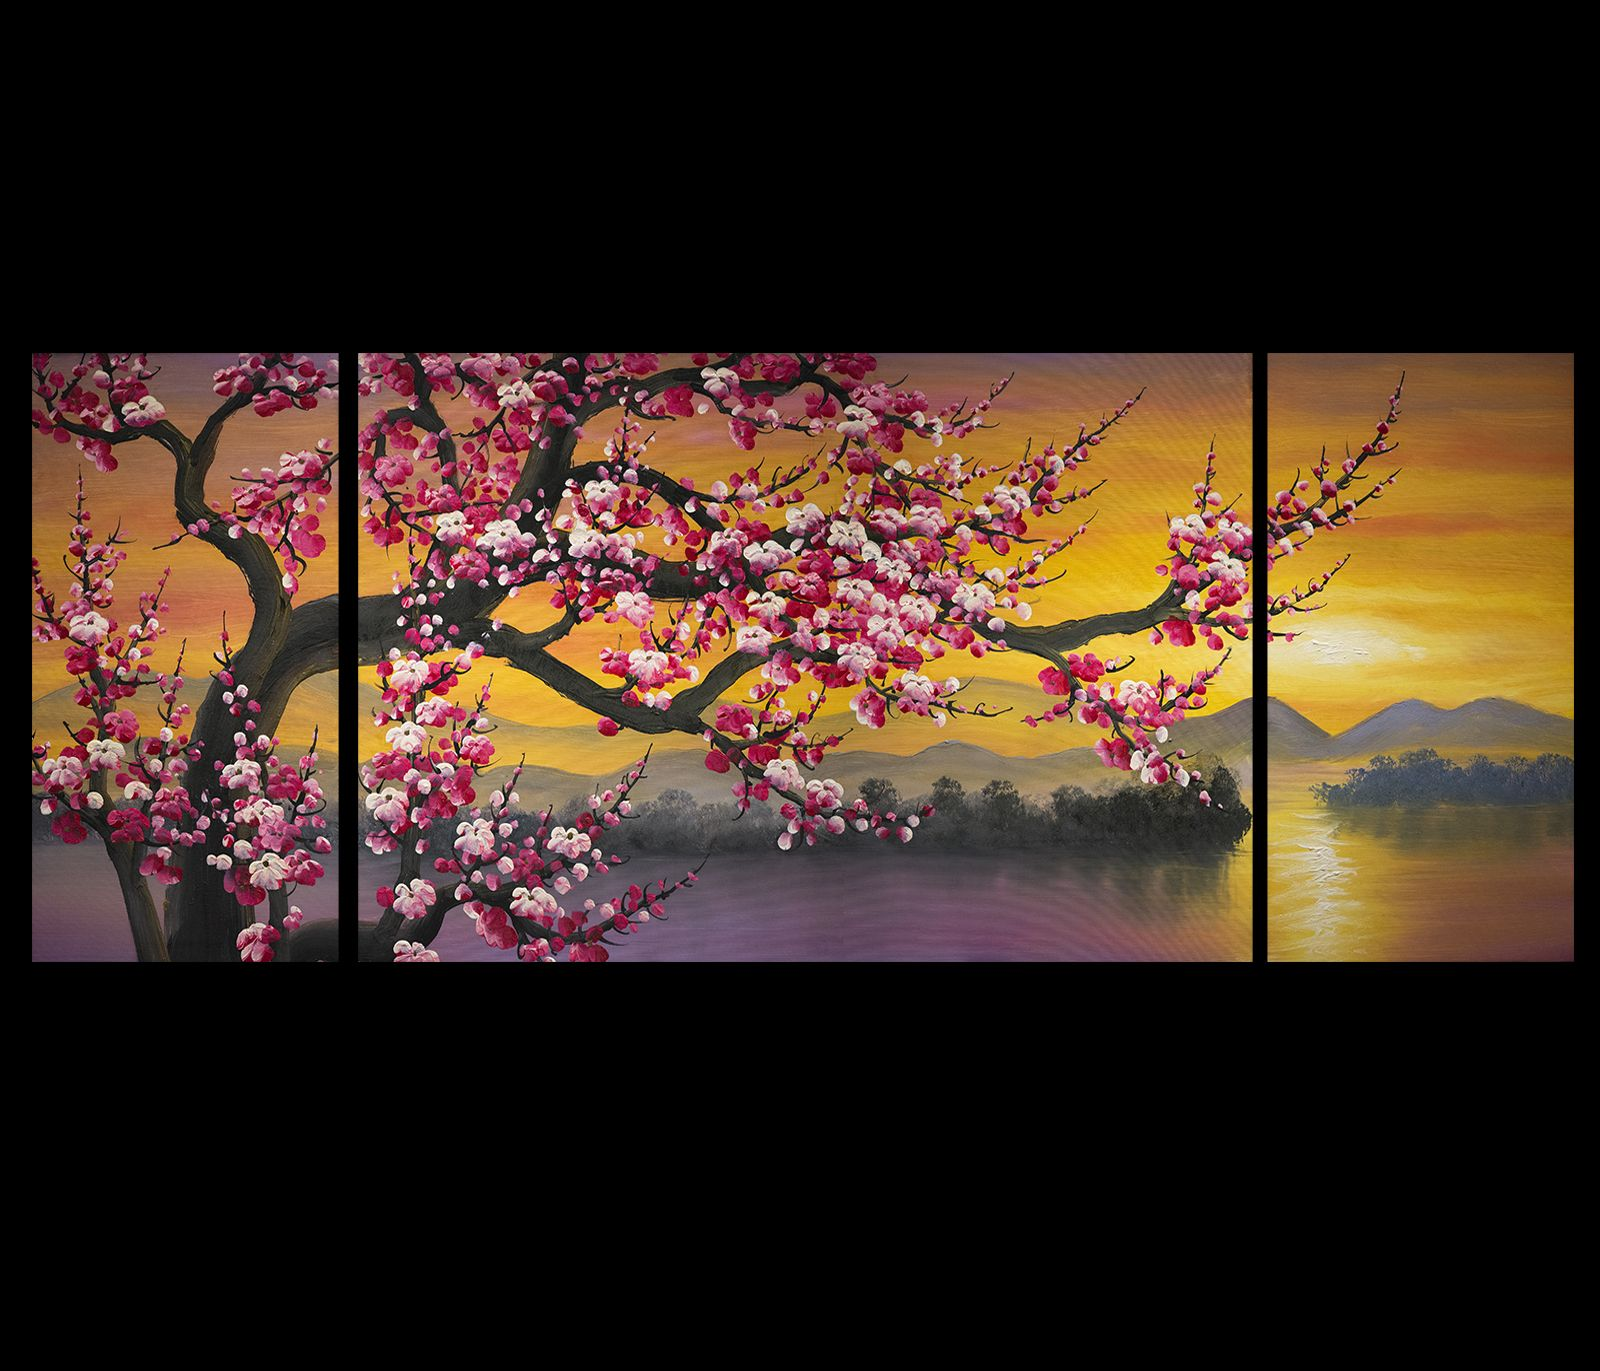 Abstract Paintings On Canvas Cherry Blossom Painting Tree Painting Canvas Tree Painting